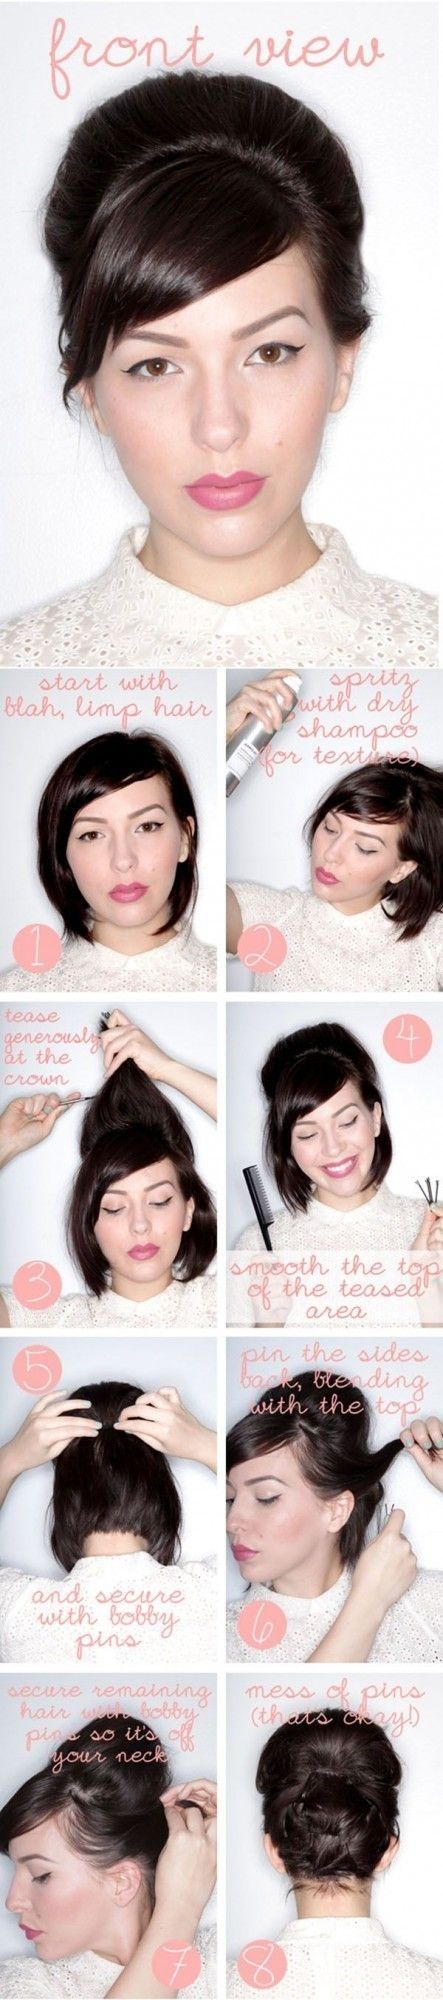 Got a bob? Do a faux updo. | 33 Impossibly Gorgeous Prom Hair Ideas